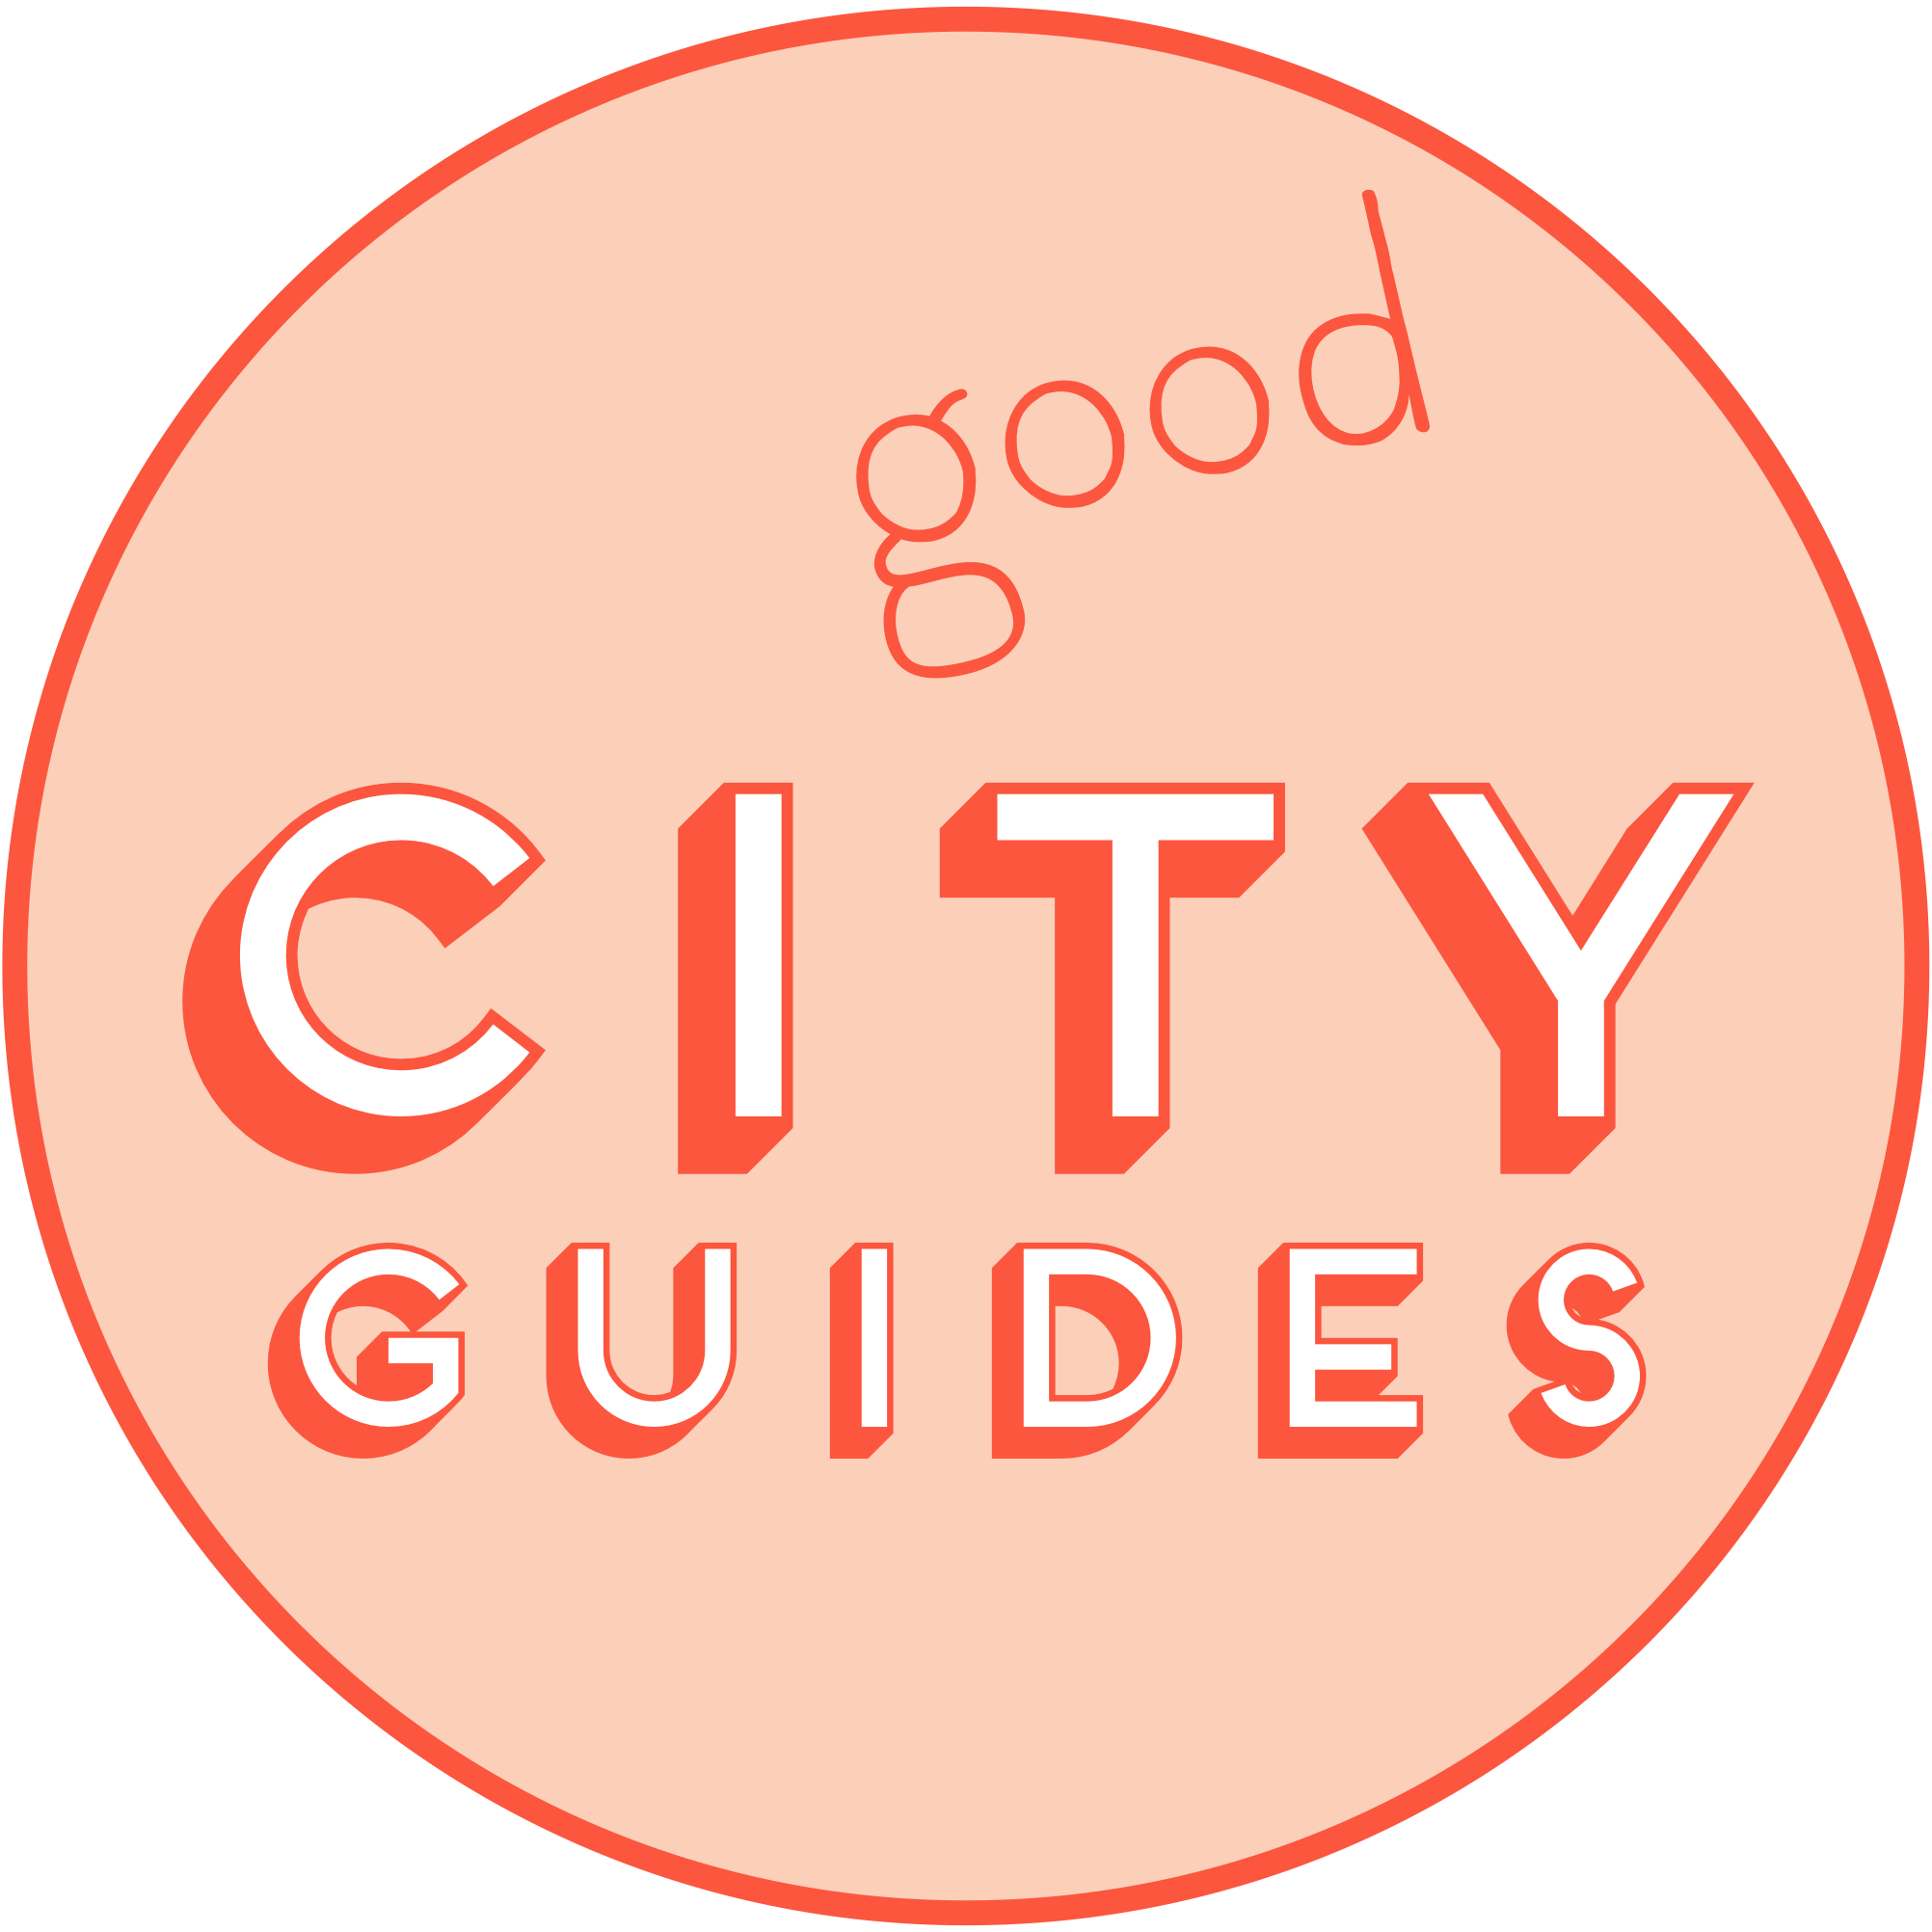 Good City Guides